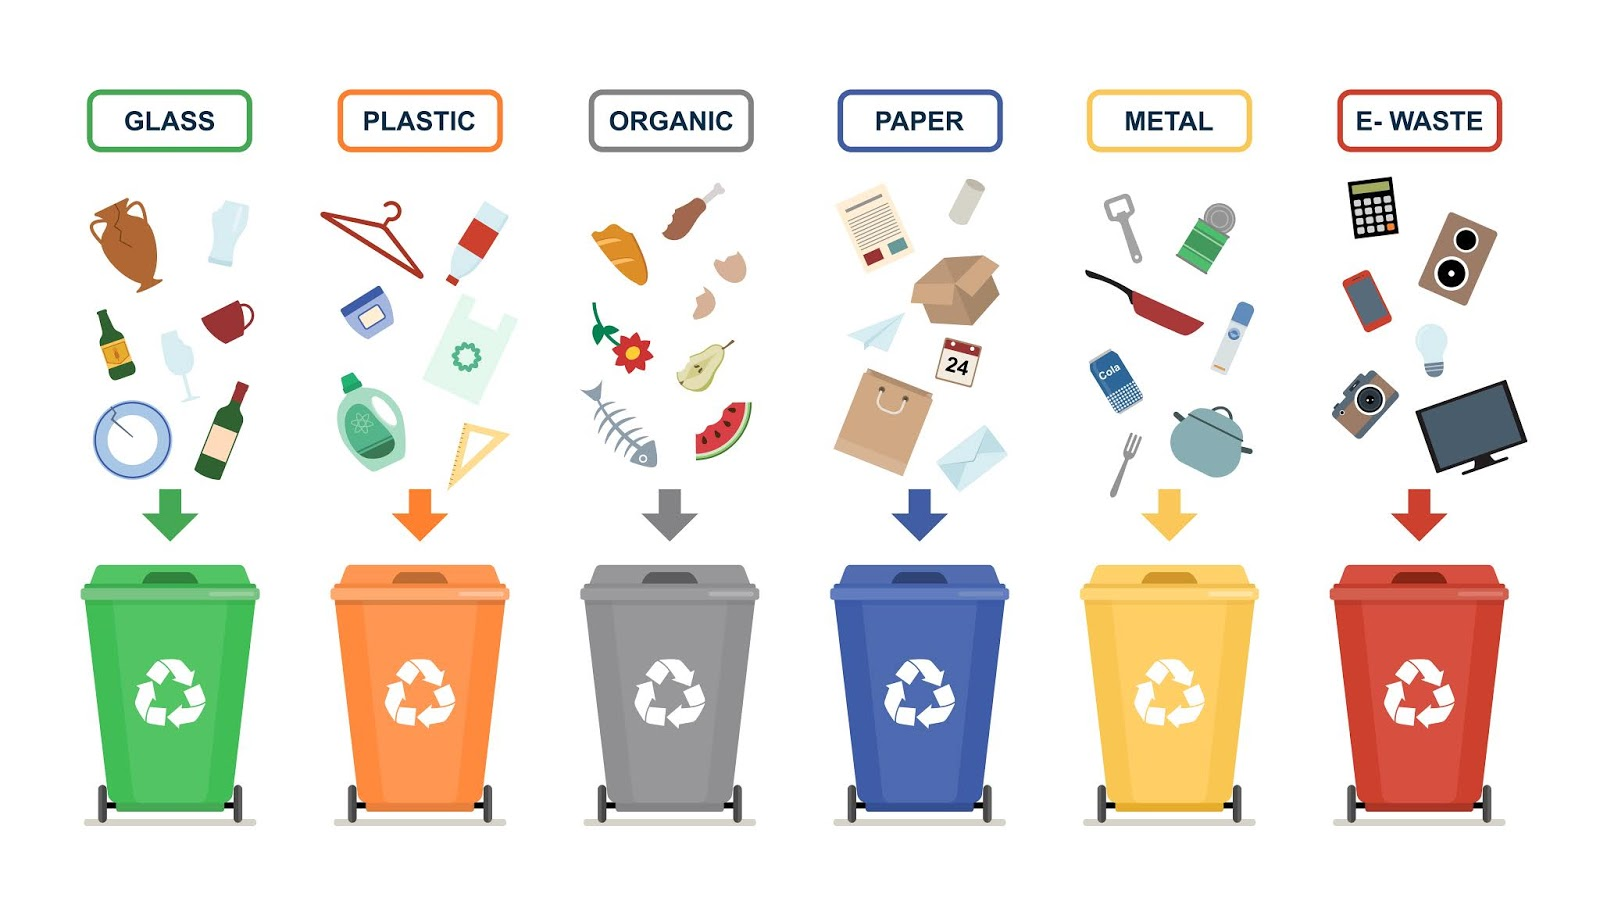 How Properly Removing Trash Affects the Environment